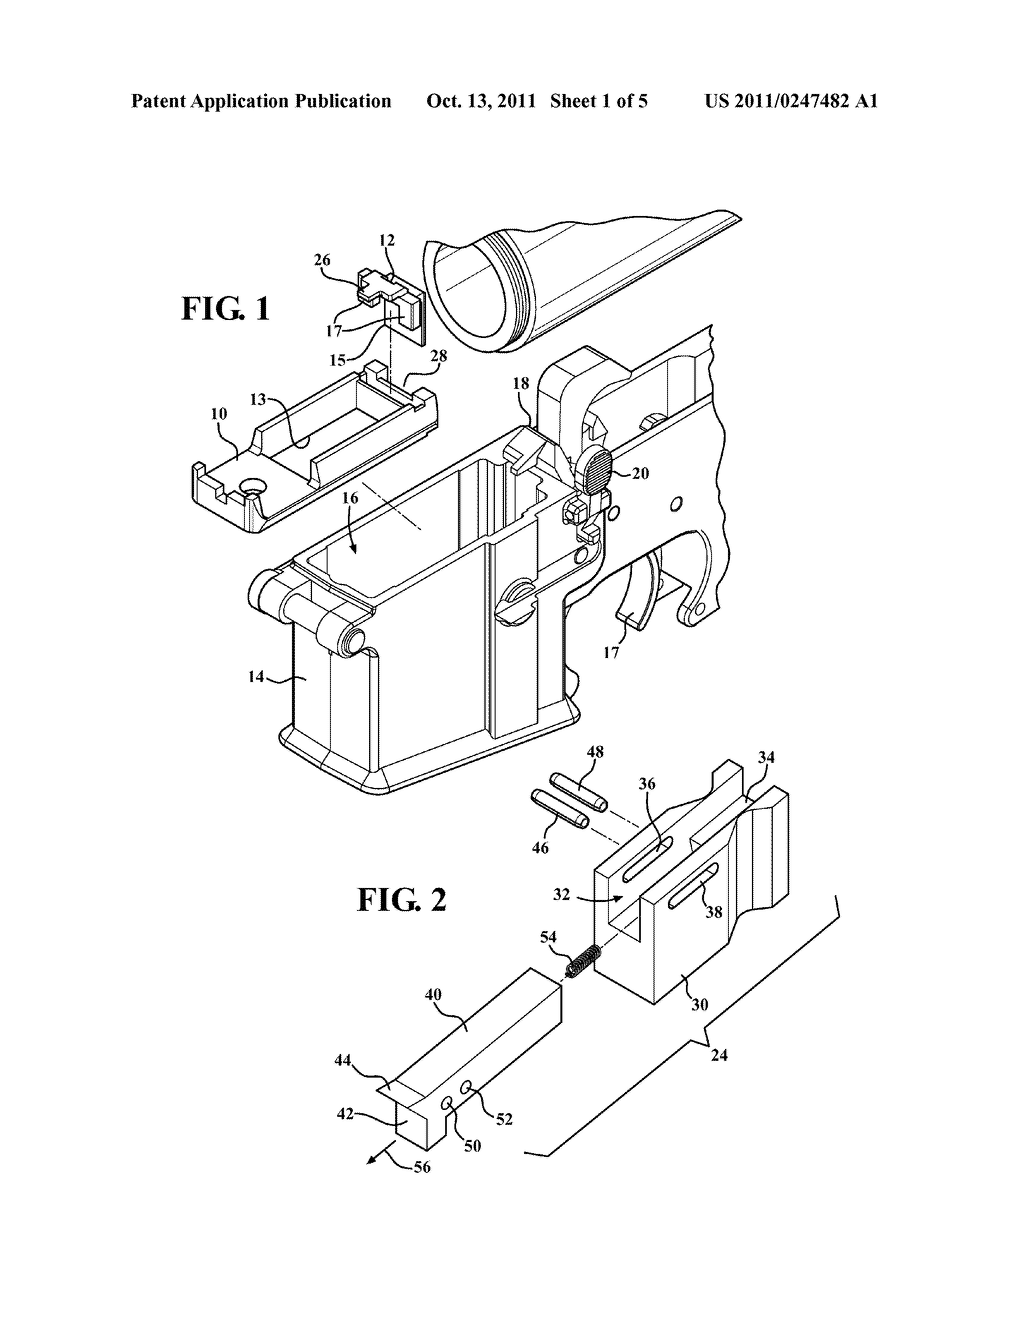 hight resolution of drop bolt hold open actuator for use with ar 15 m16 type firearms and incorporating a modified and displaceable follower for engaging a bolt catch mechanism